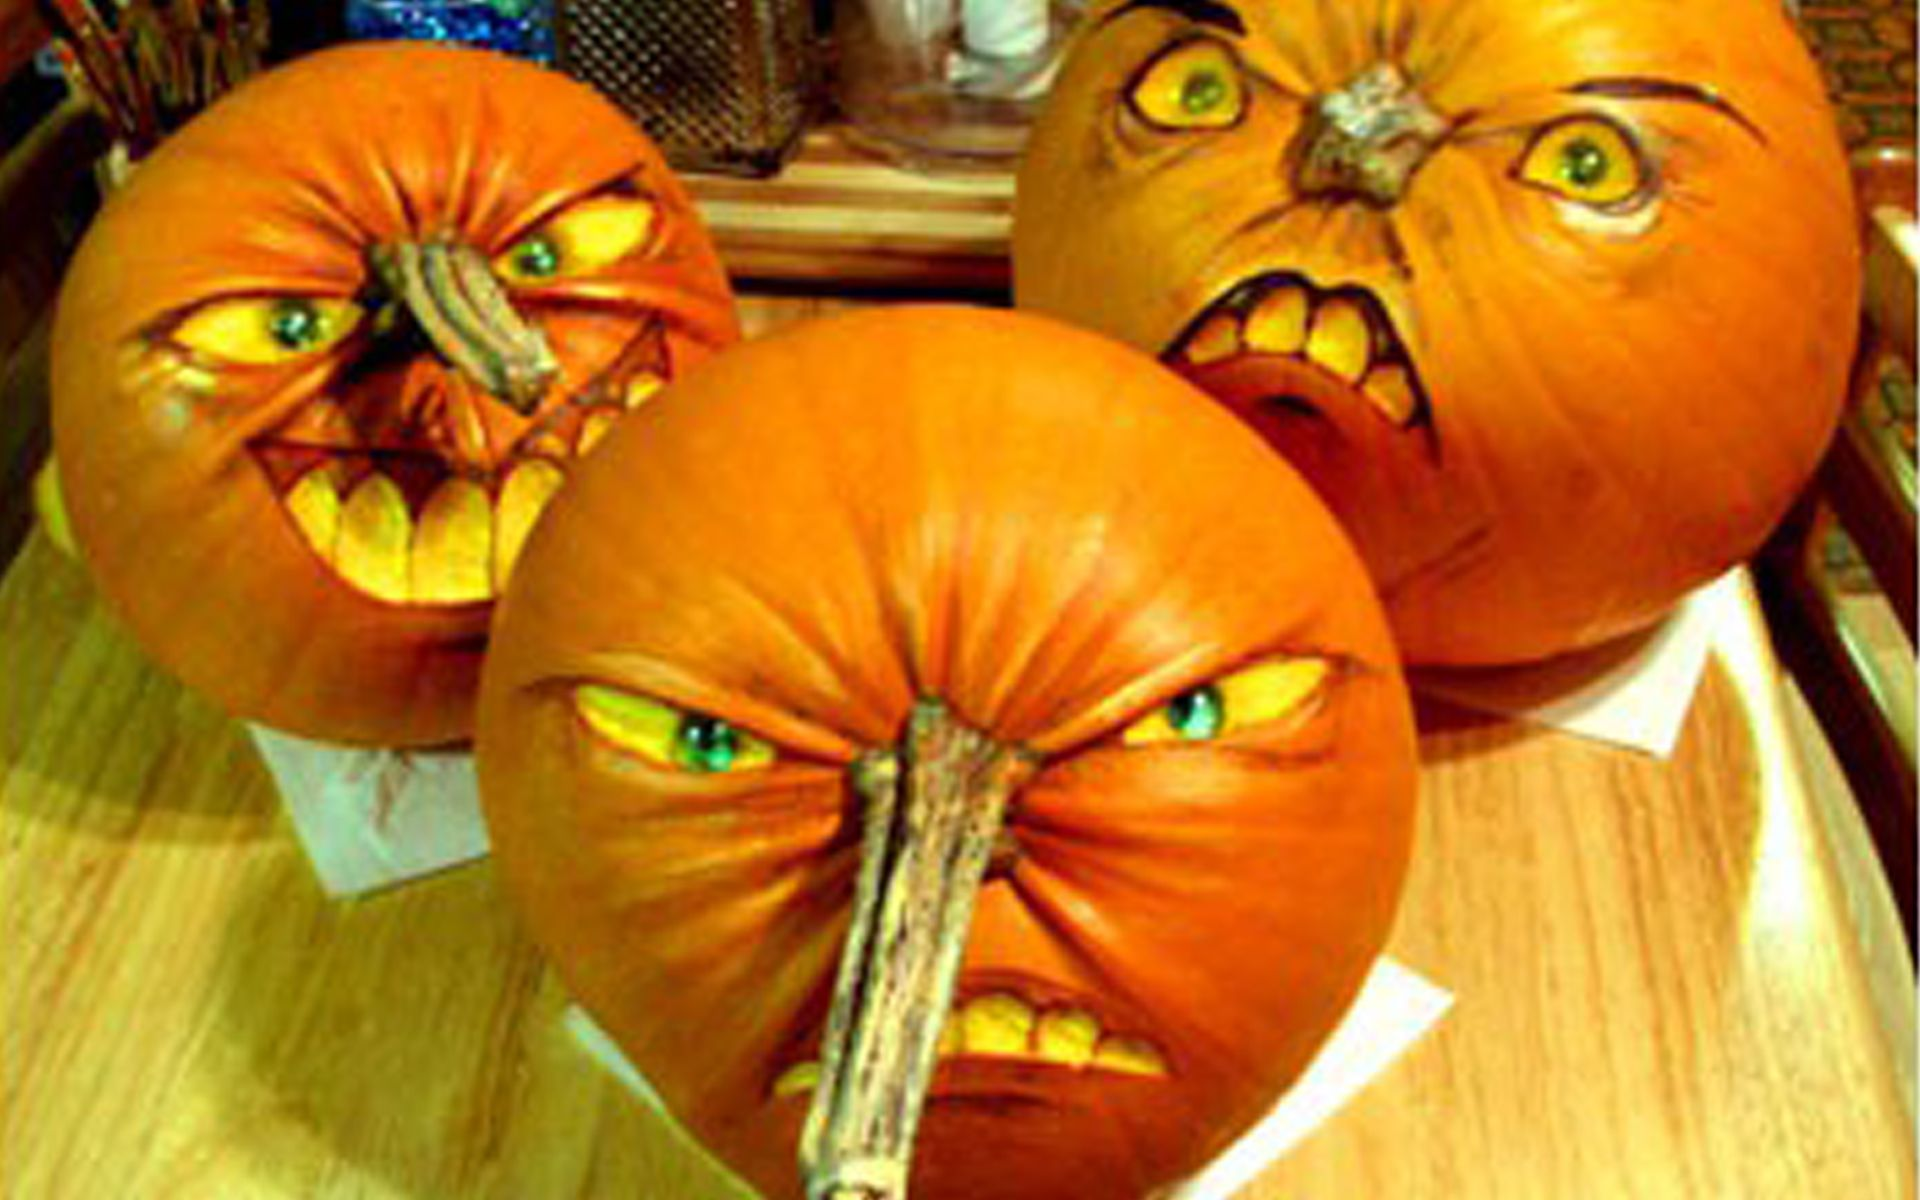 Cool Pumpkins Time for the Holidays Halloween